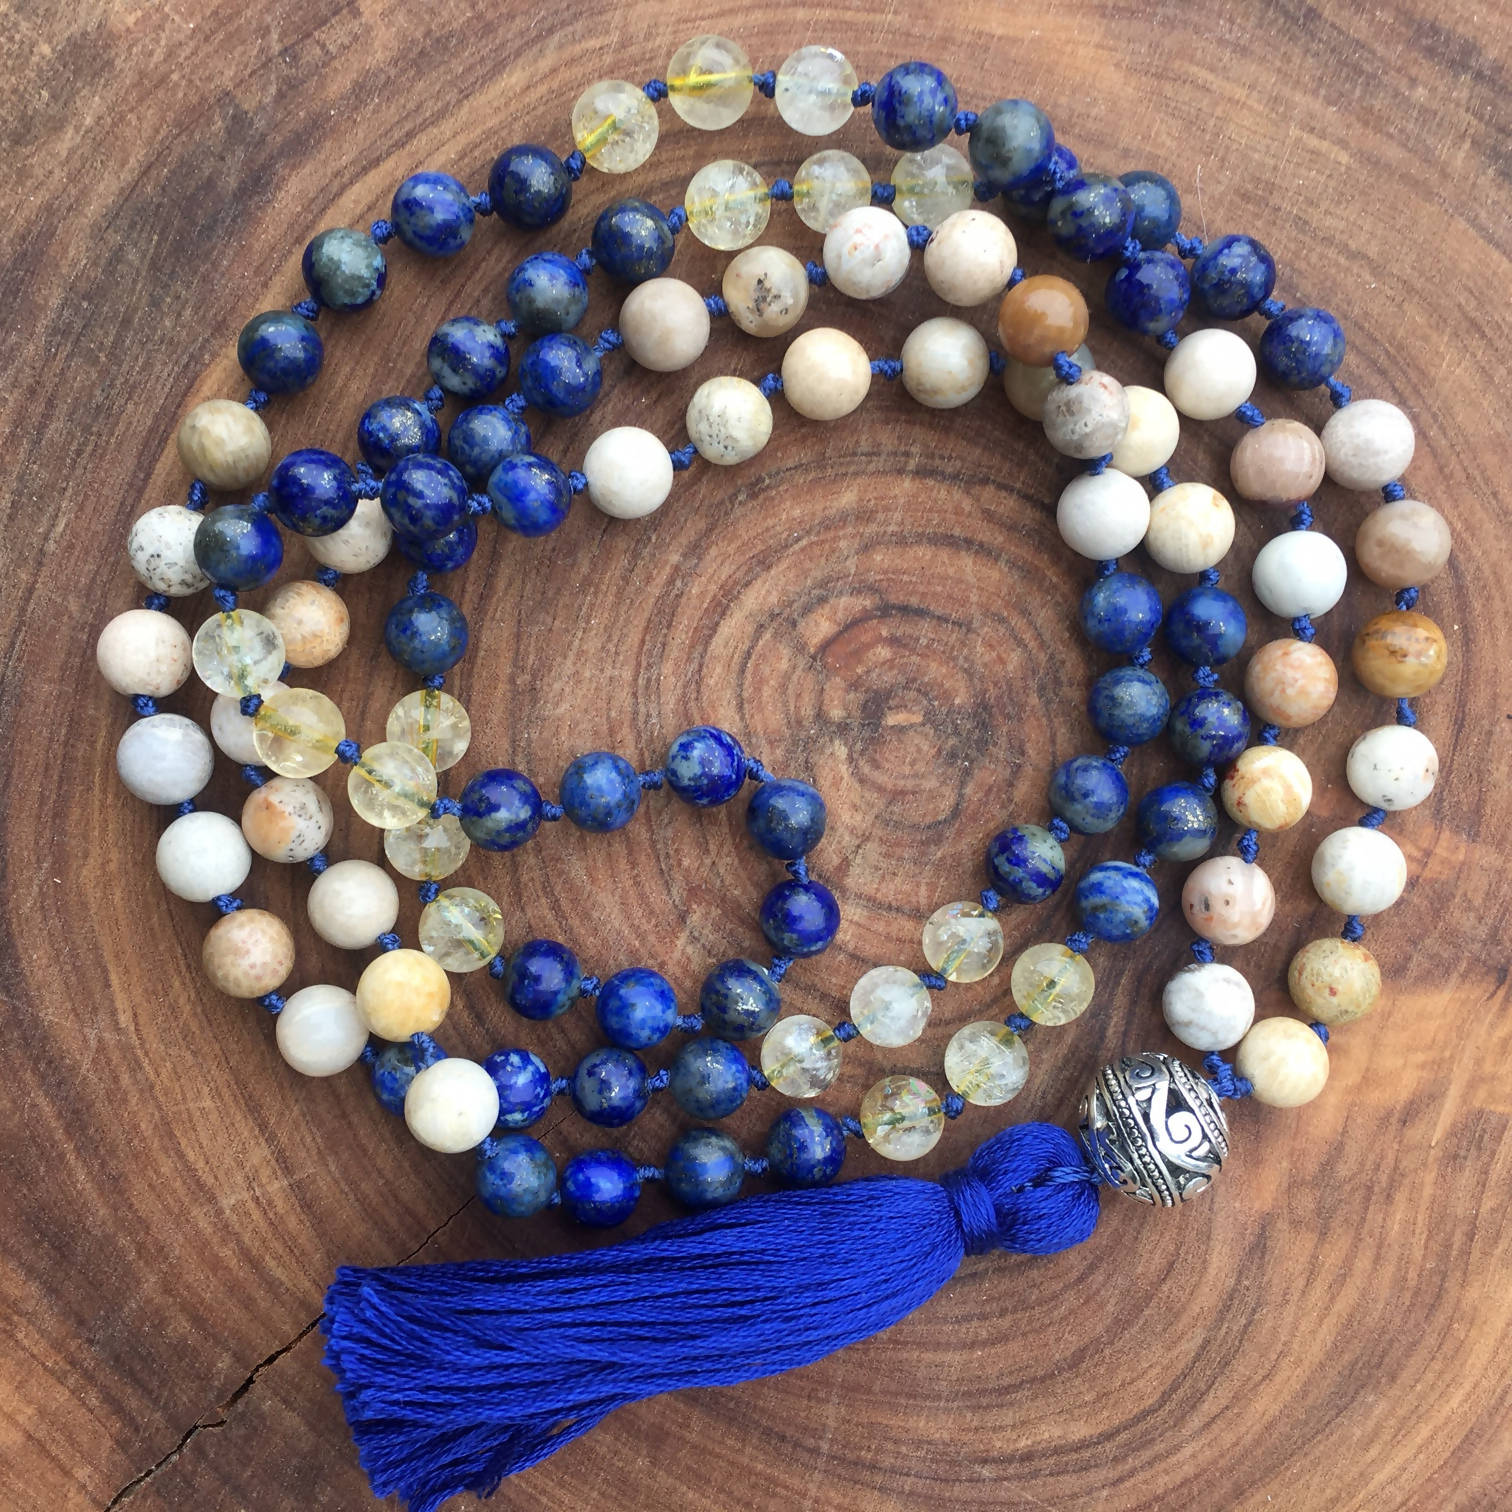 Manifest, attract success + integrate wisdom learned MALA Necklace